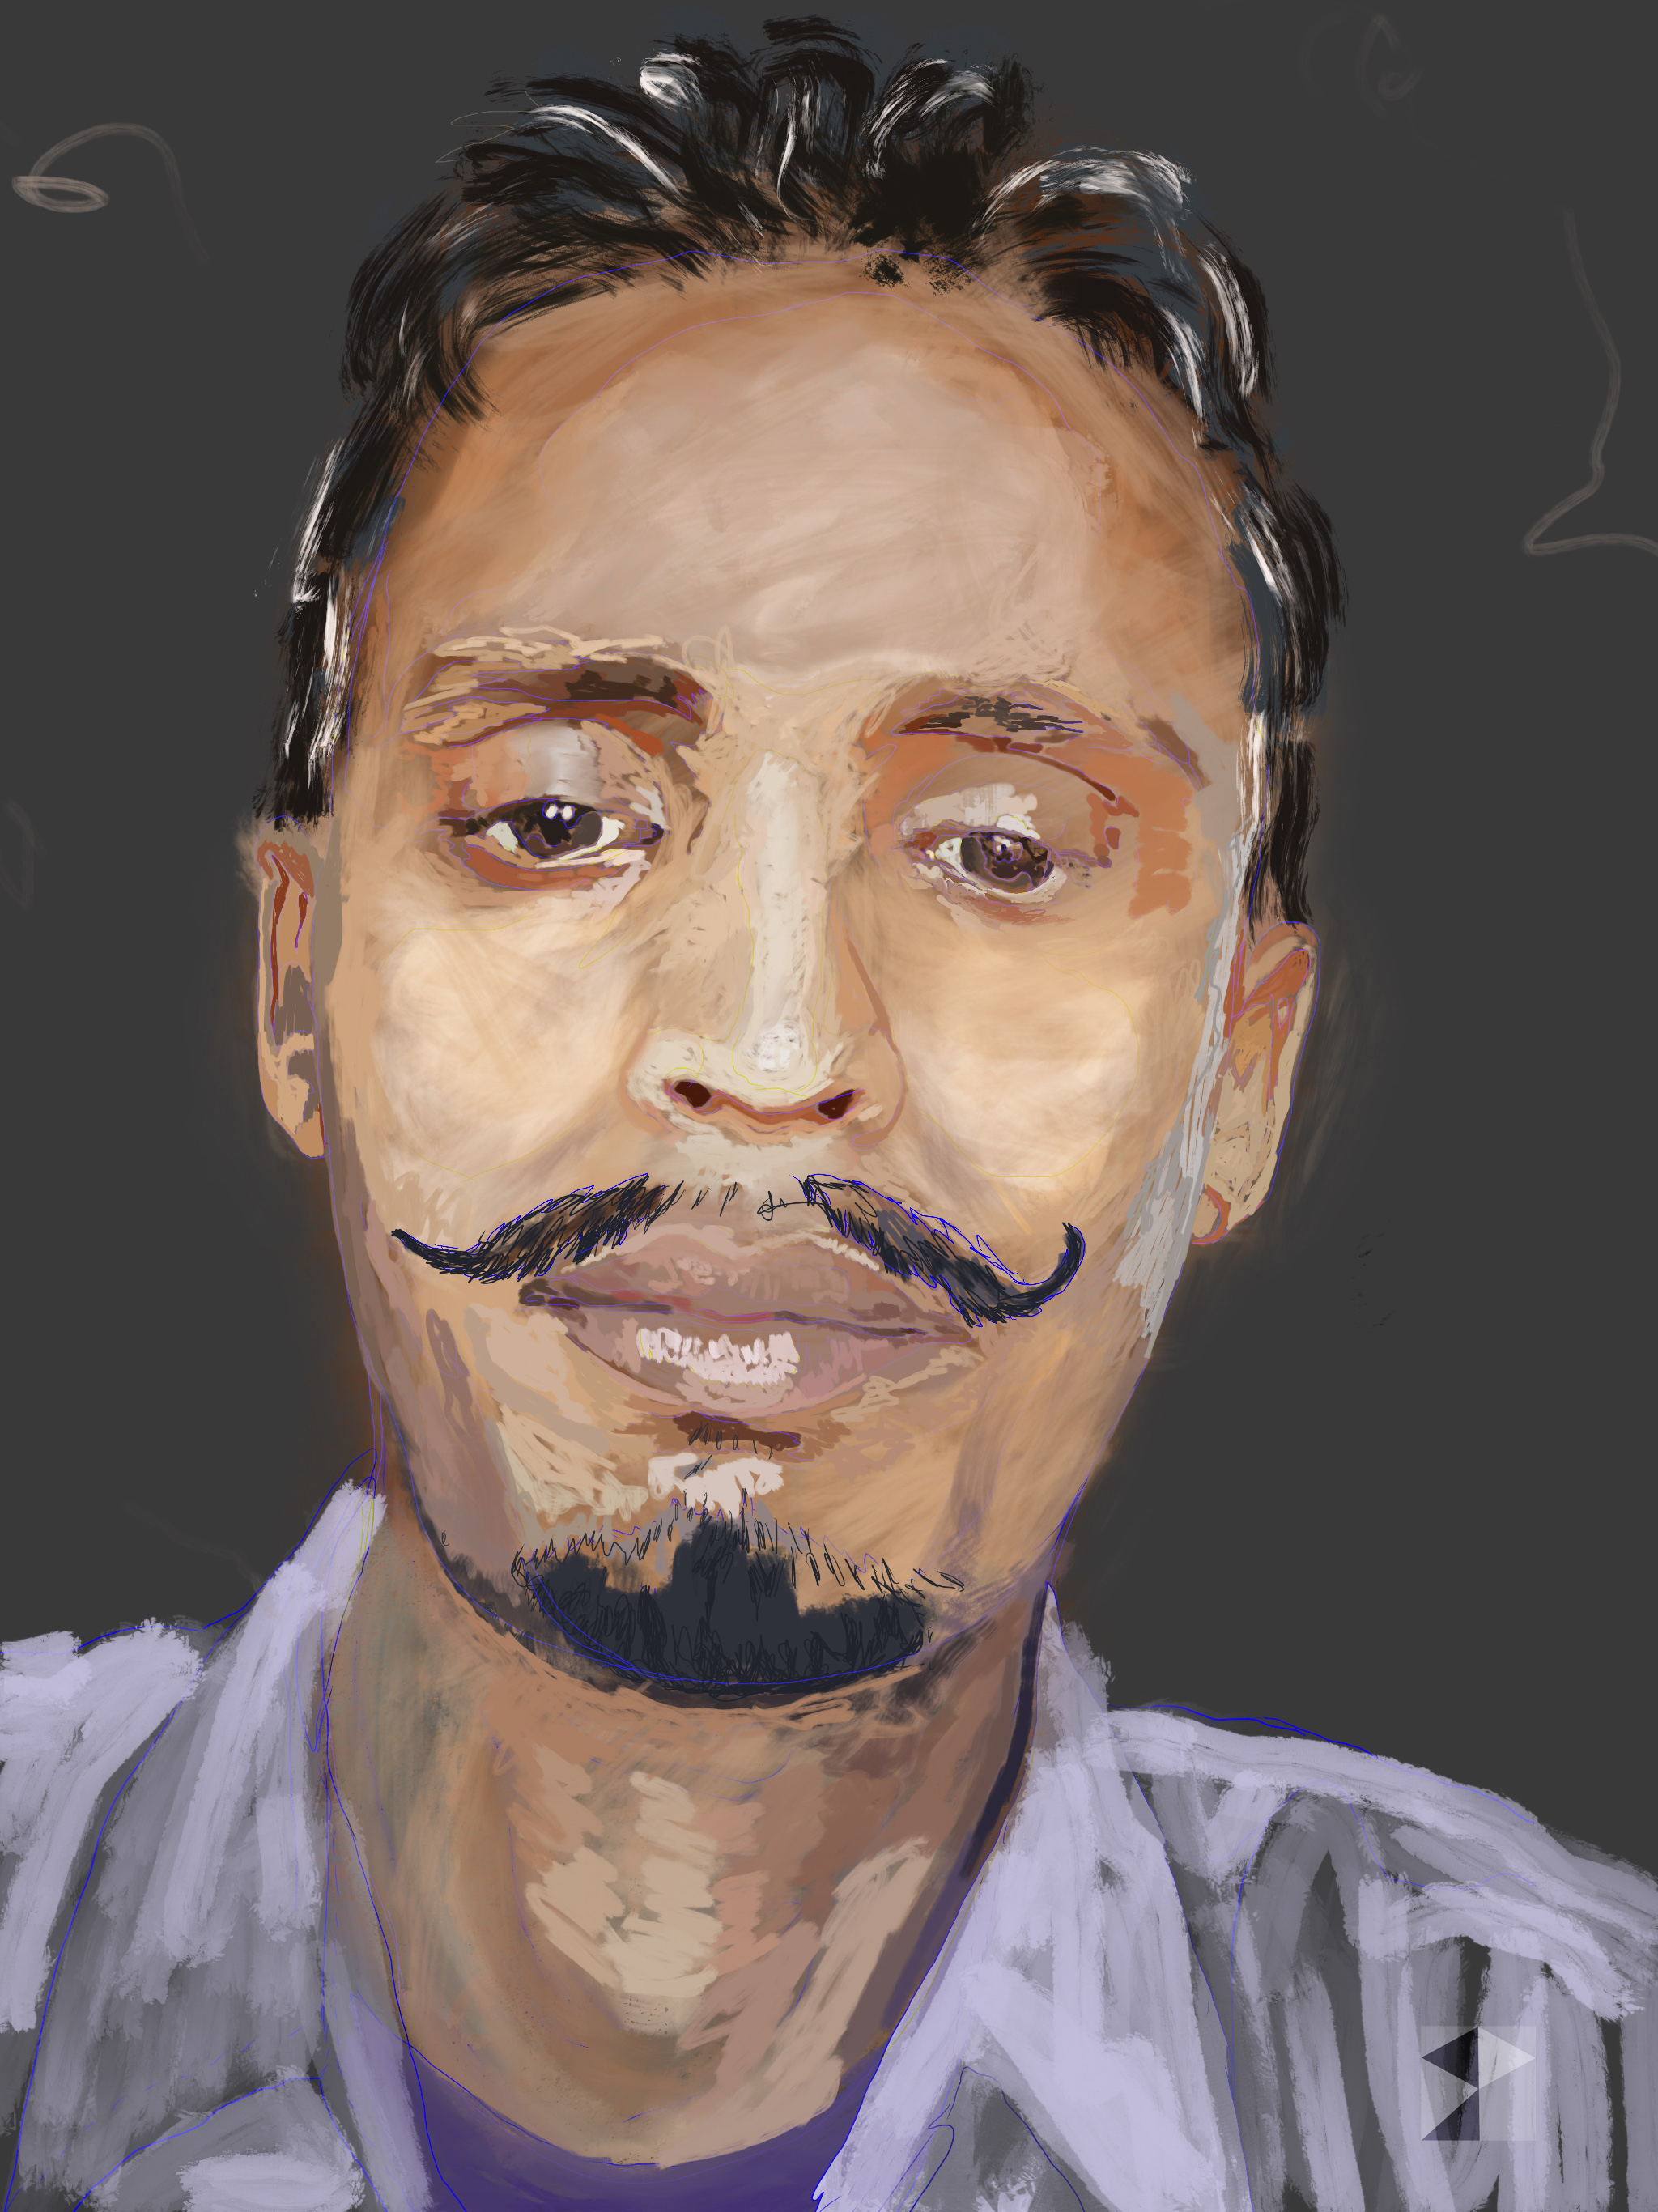 Mithun    FBSelfie, ProCreate, ApplePencil, Photoshop, iPad, Desktop Digital Image Dimensions Variable © SP. 2017